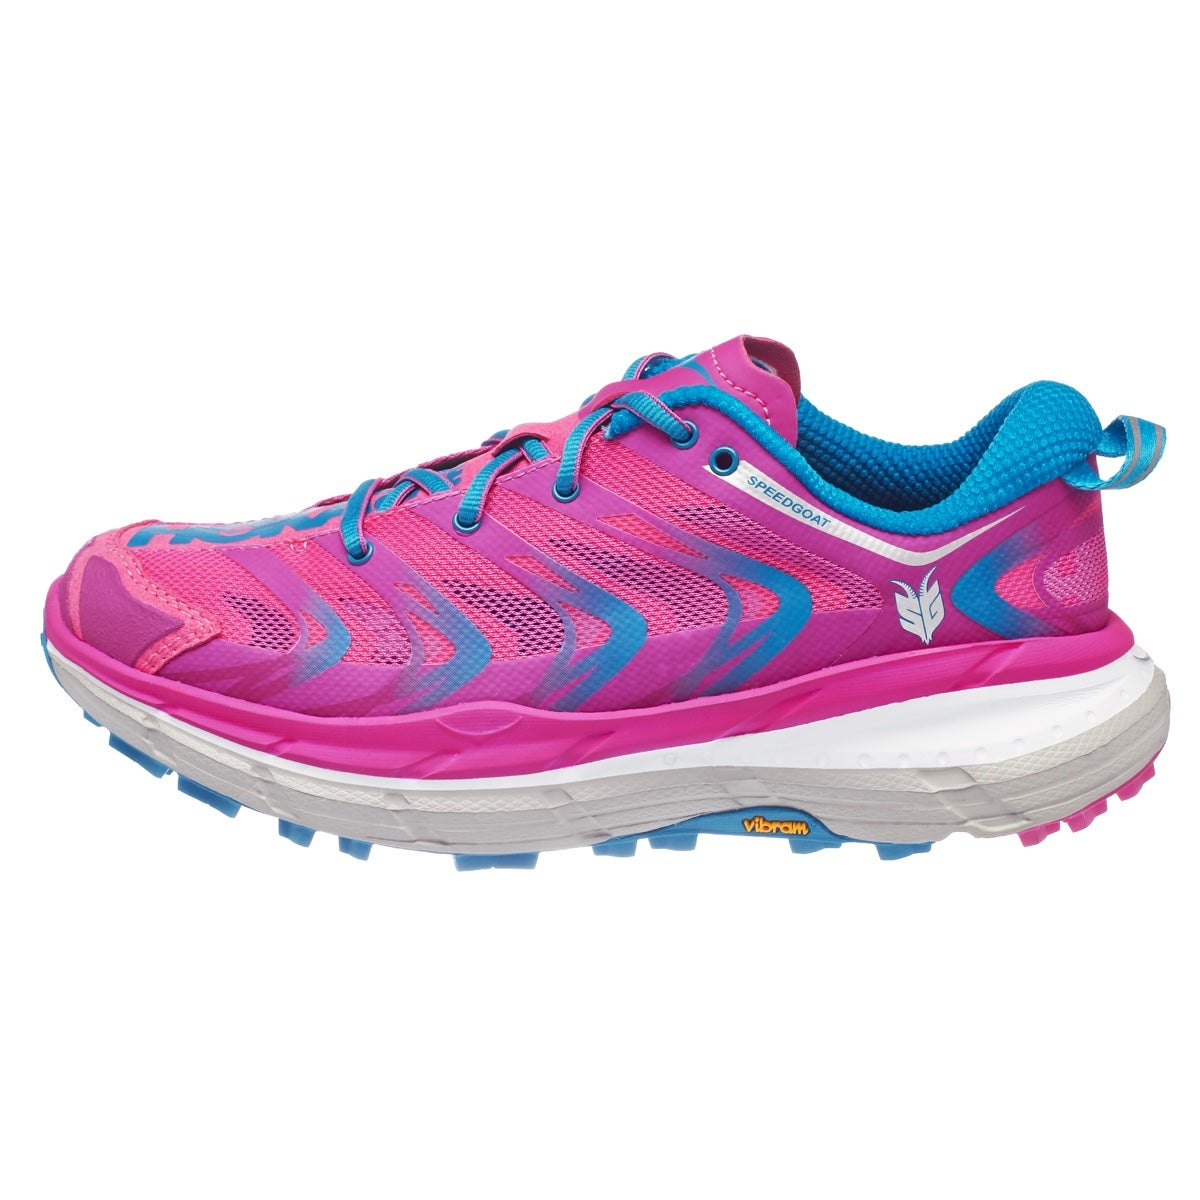 Hoka One One has been known primarily for its maximalist highly cushioned neutral running shoes, but it has dipped its feet in the stability market once or twice dumcecibit.gaus stability models by Hoka One One include the Hoka Constant v1 and v2, and Infinite.